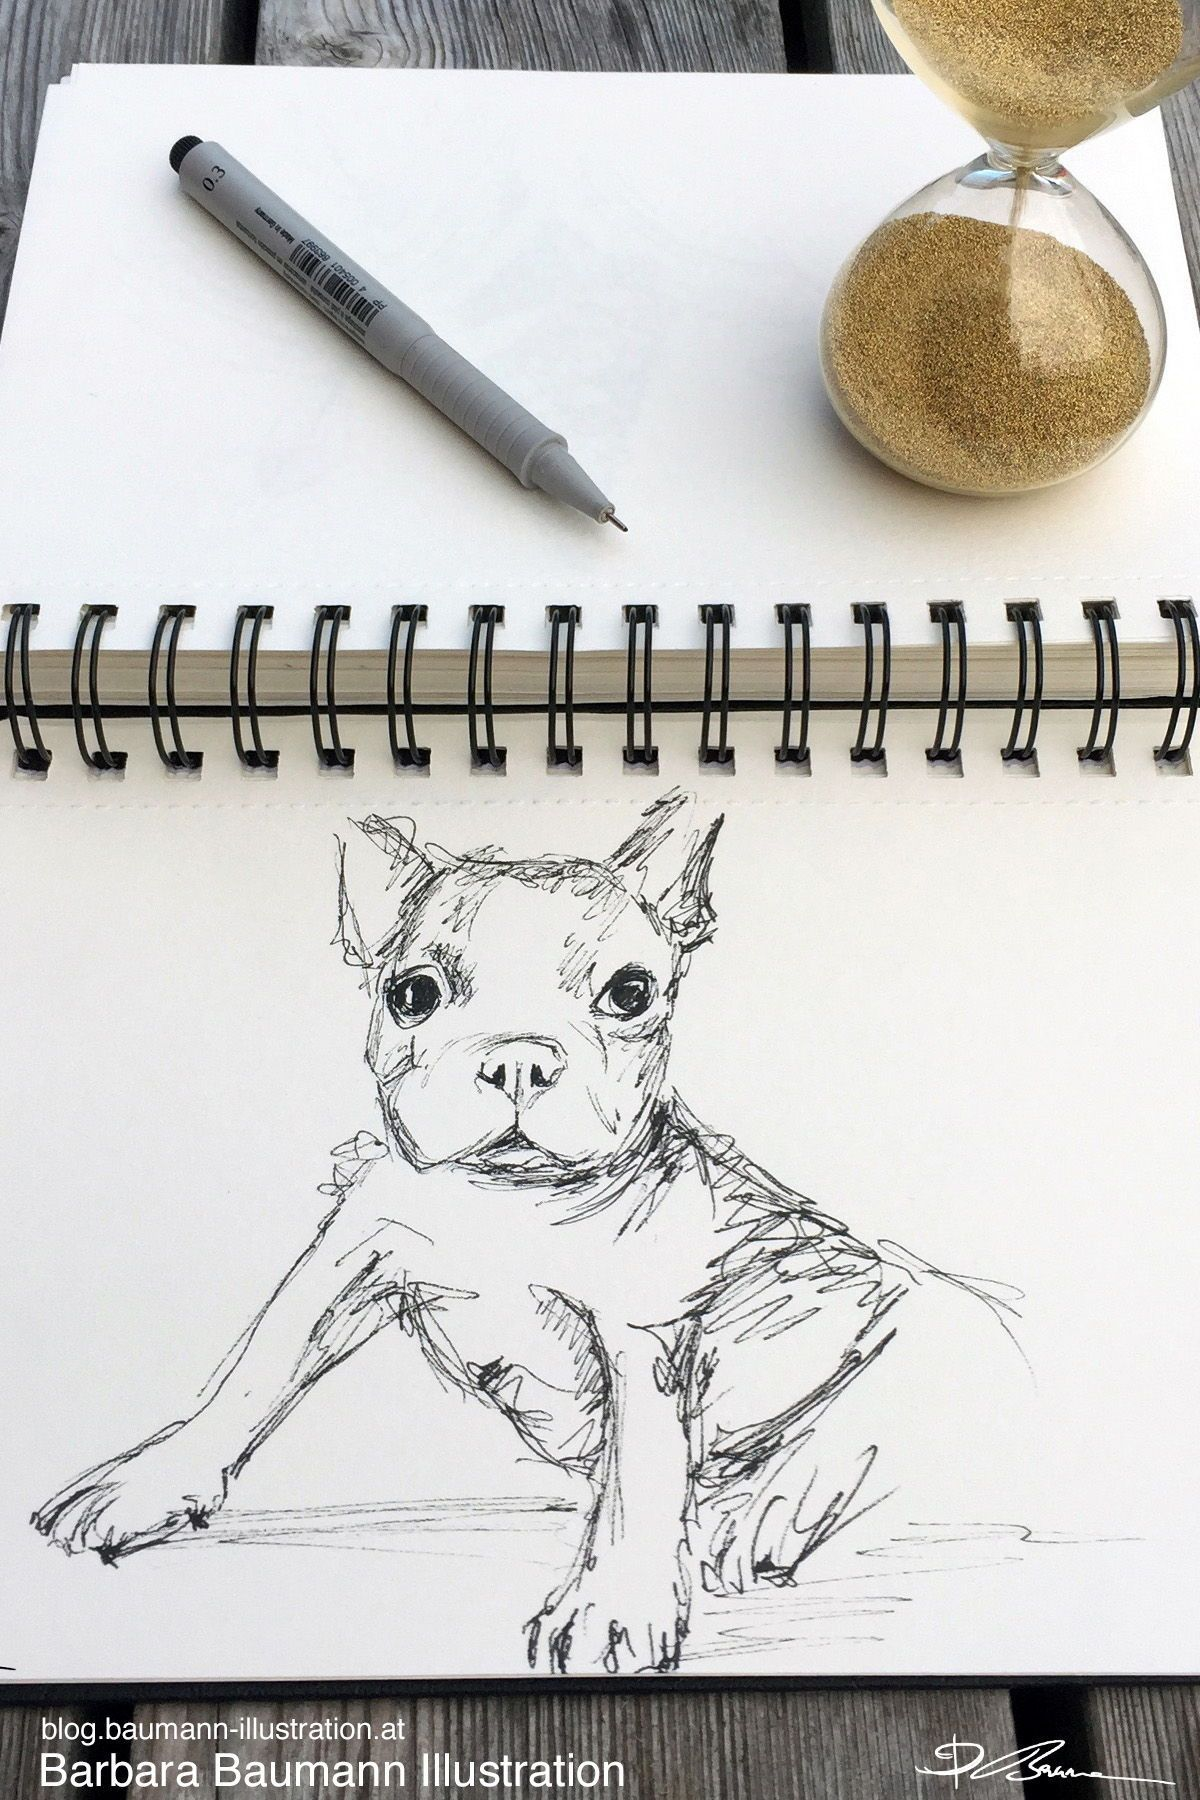 Speed animal drawing - sketching a dog with ink in 3 minutes on the sketchbook -  Sketching drawing of animals with abstract simple basic shapes without pencil draft before for defi - #albinoanimal #amazinganimals #animal #basicanimaldrawings #dog #Drawing #Ink #minutes #sketchbook #Sketching #speed